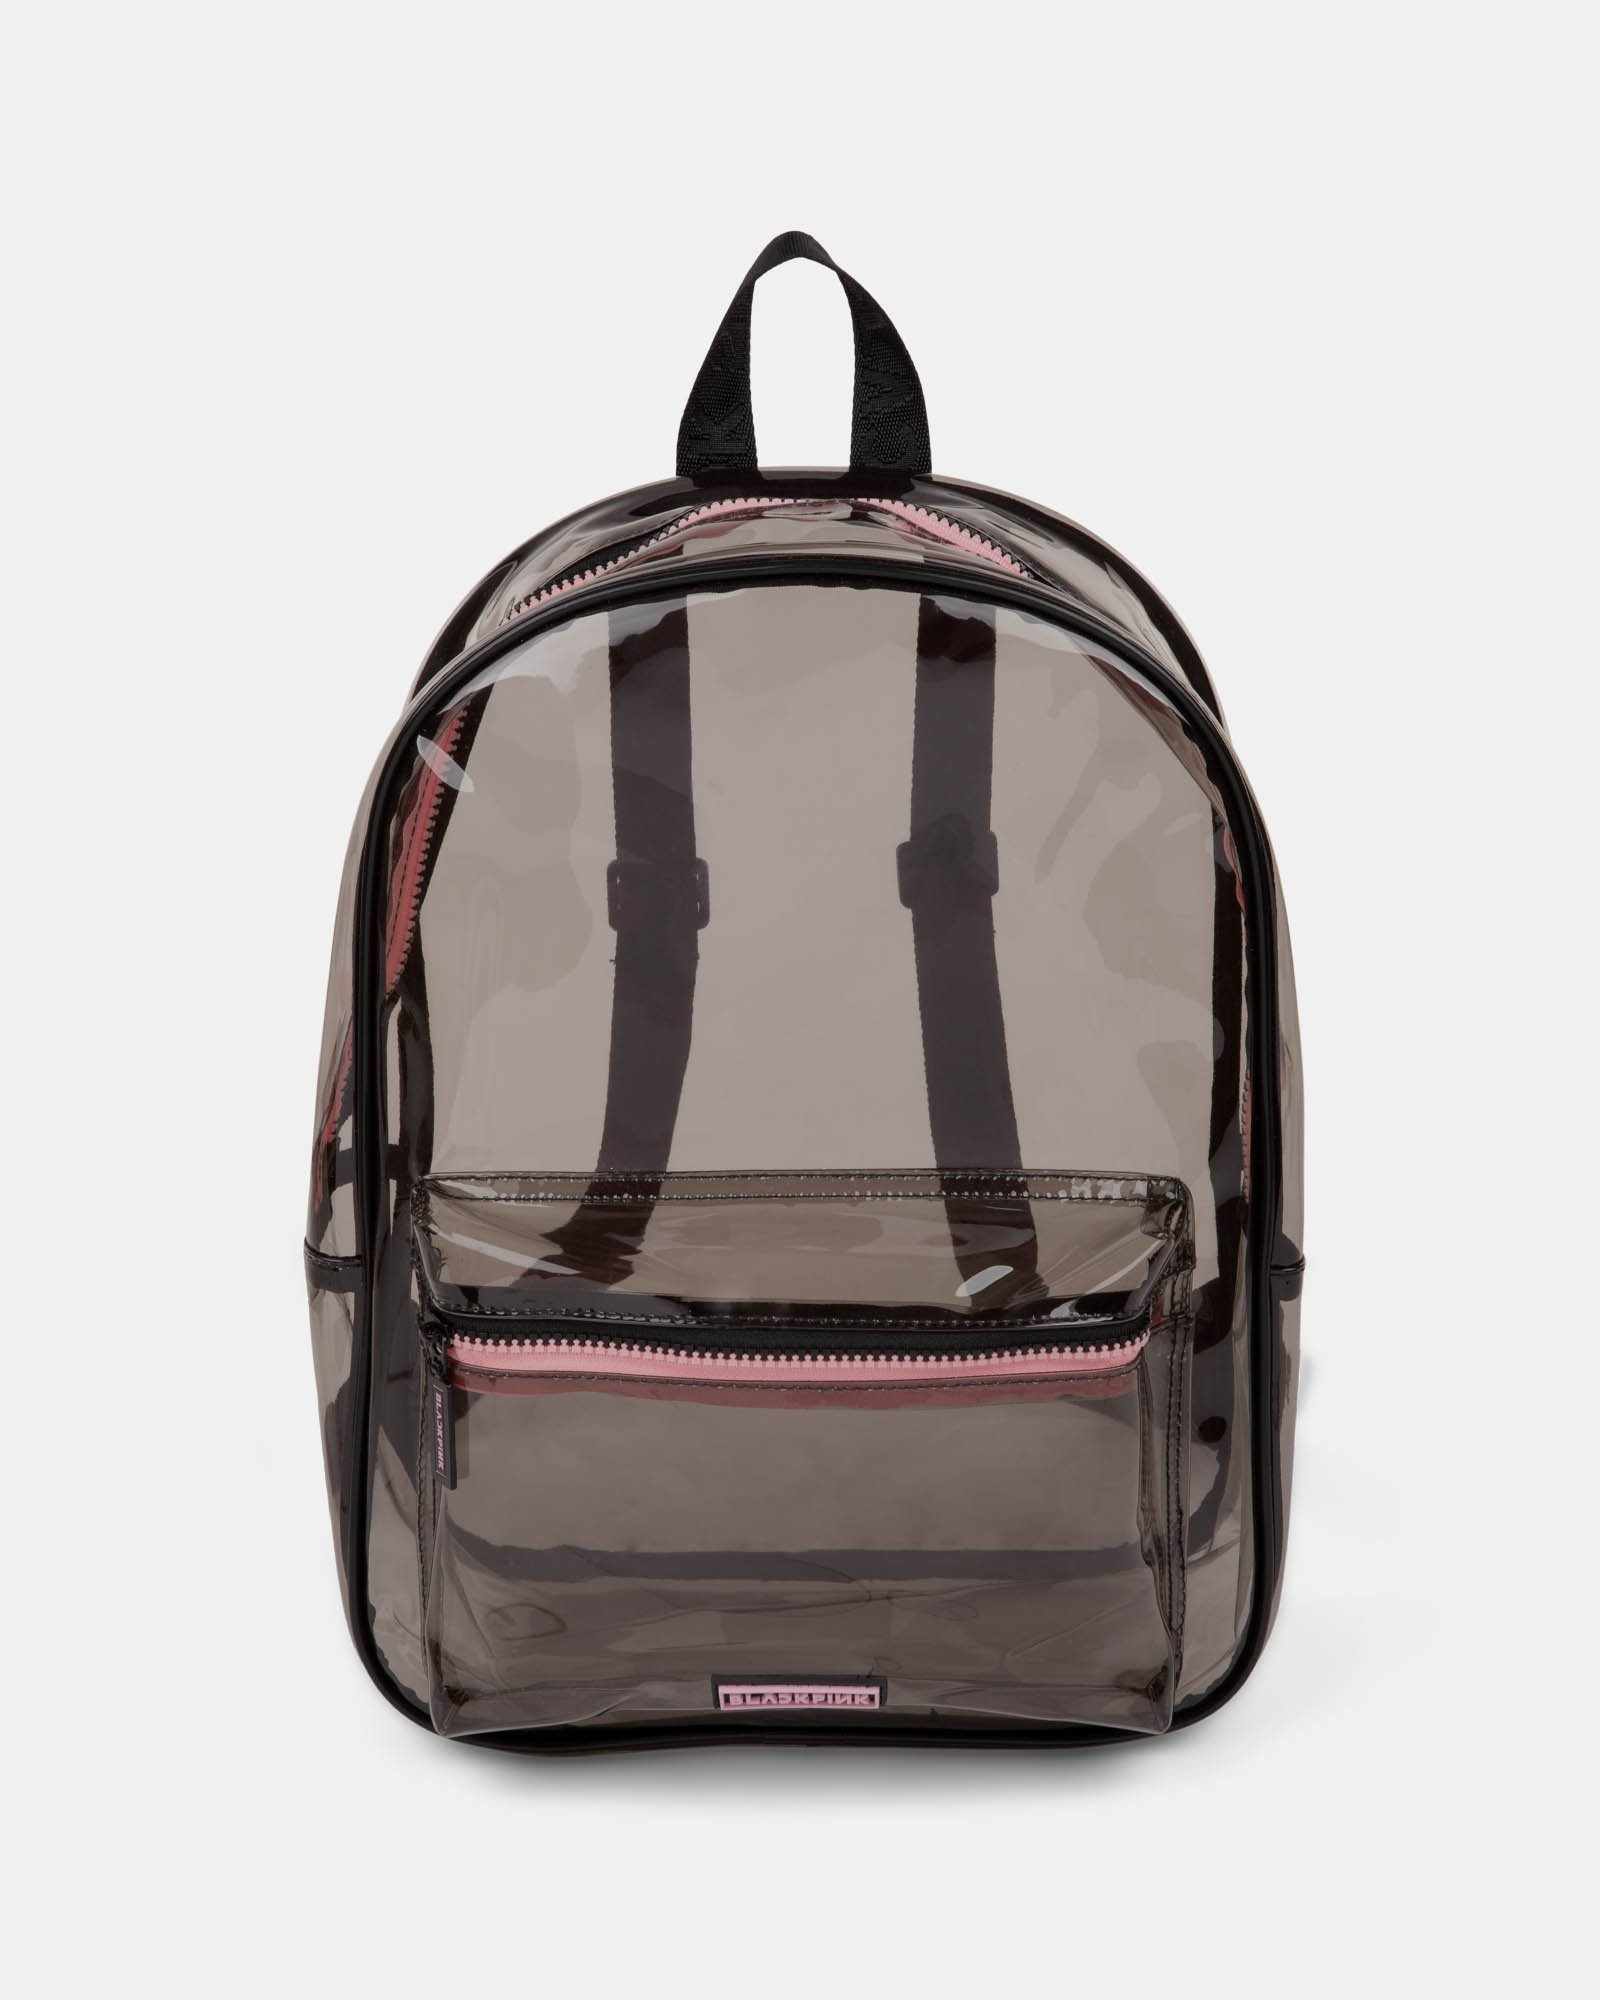 Blackpink - Clearly You Collection - black-tinted see-through backpack with pink zippers - BLACK - BLACKPINK - Zoom